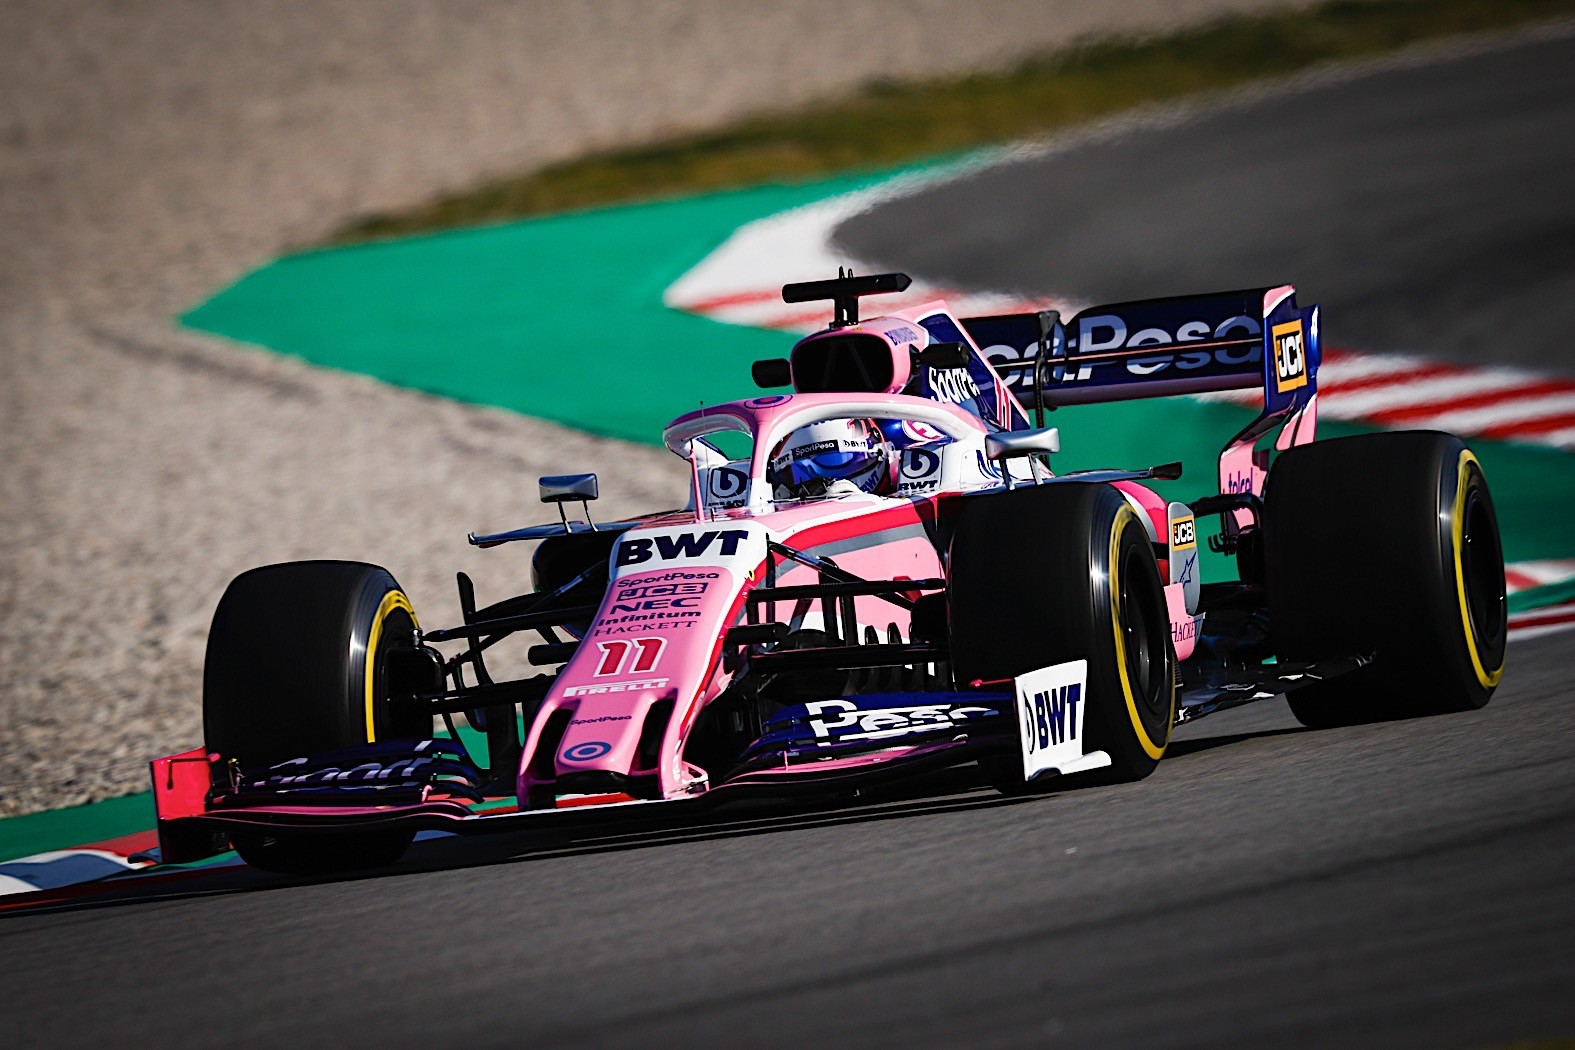 2019 Formula 1 Round-Up: Cars, Drivers, Regulations ...